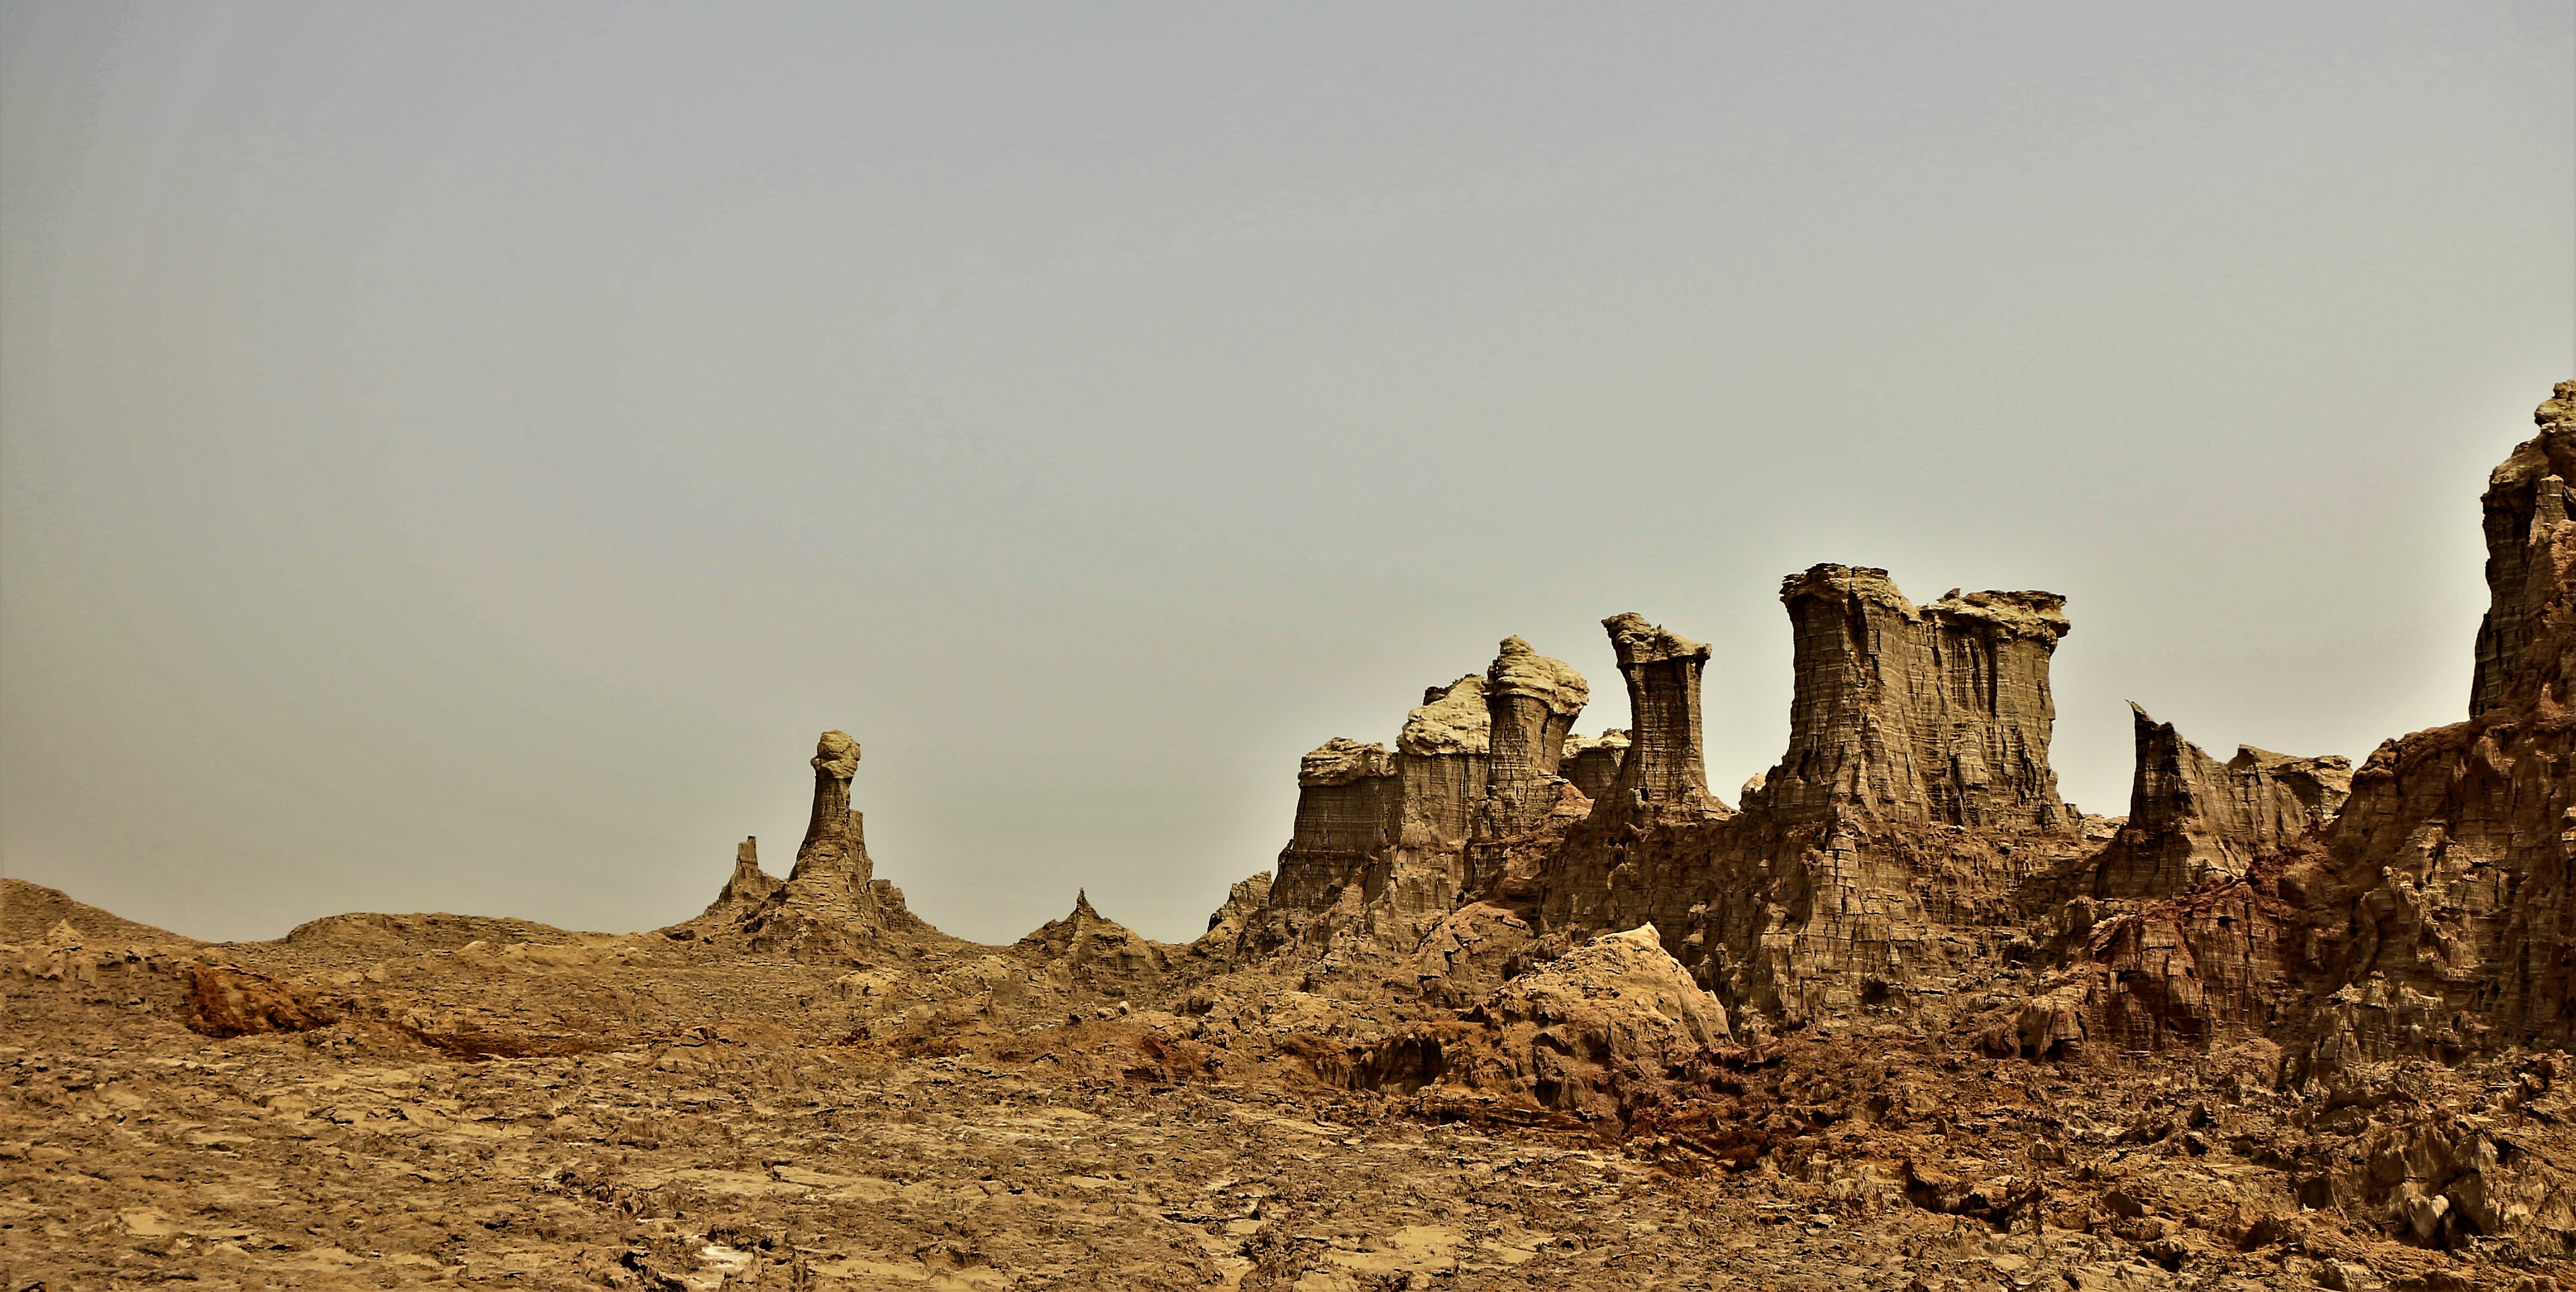 brown rock formations